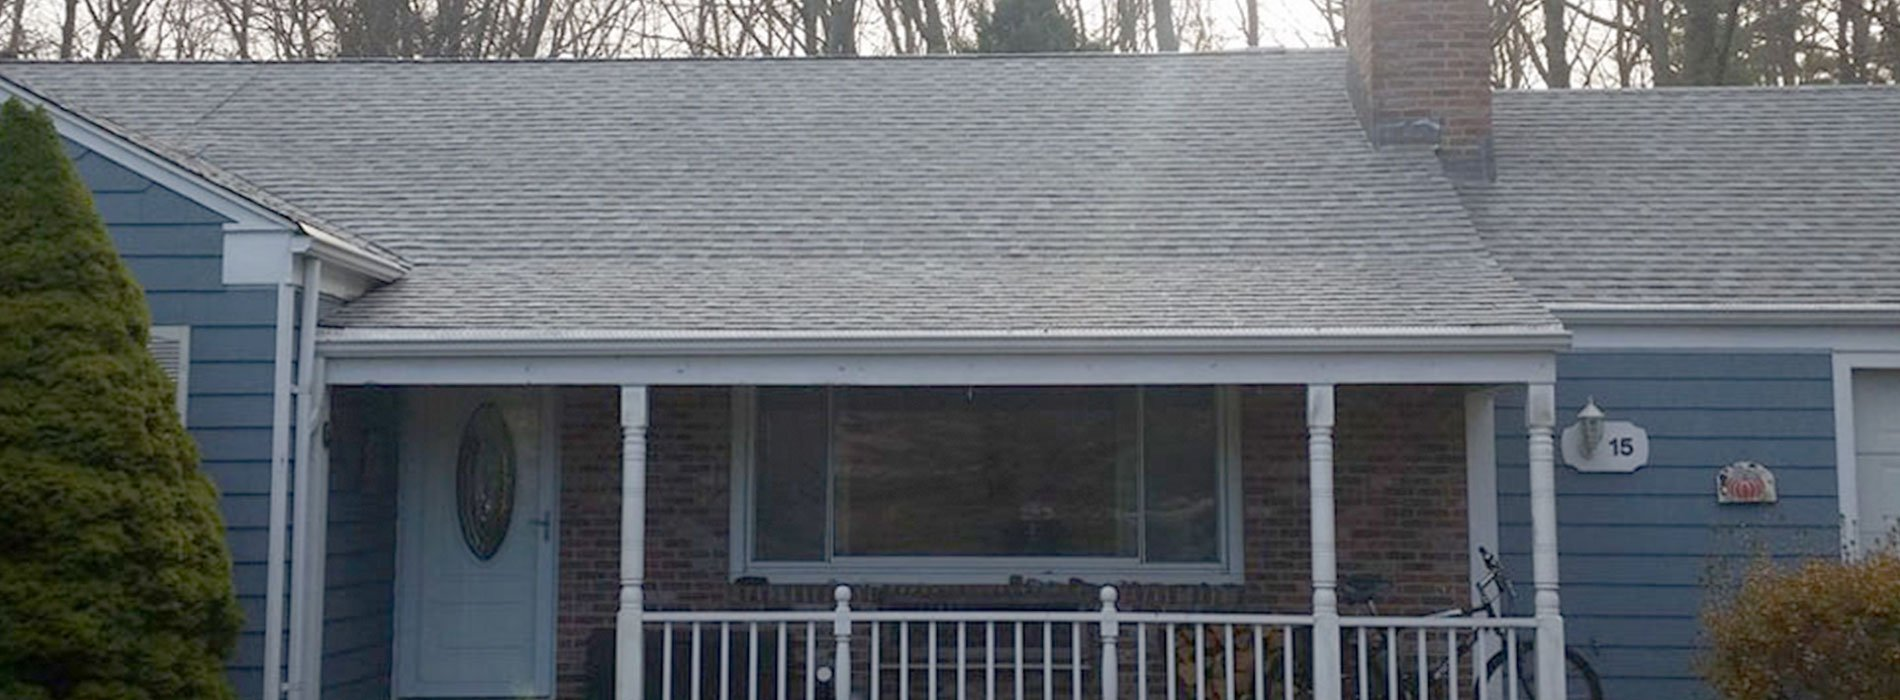 Roofing and Home Improvement Services